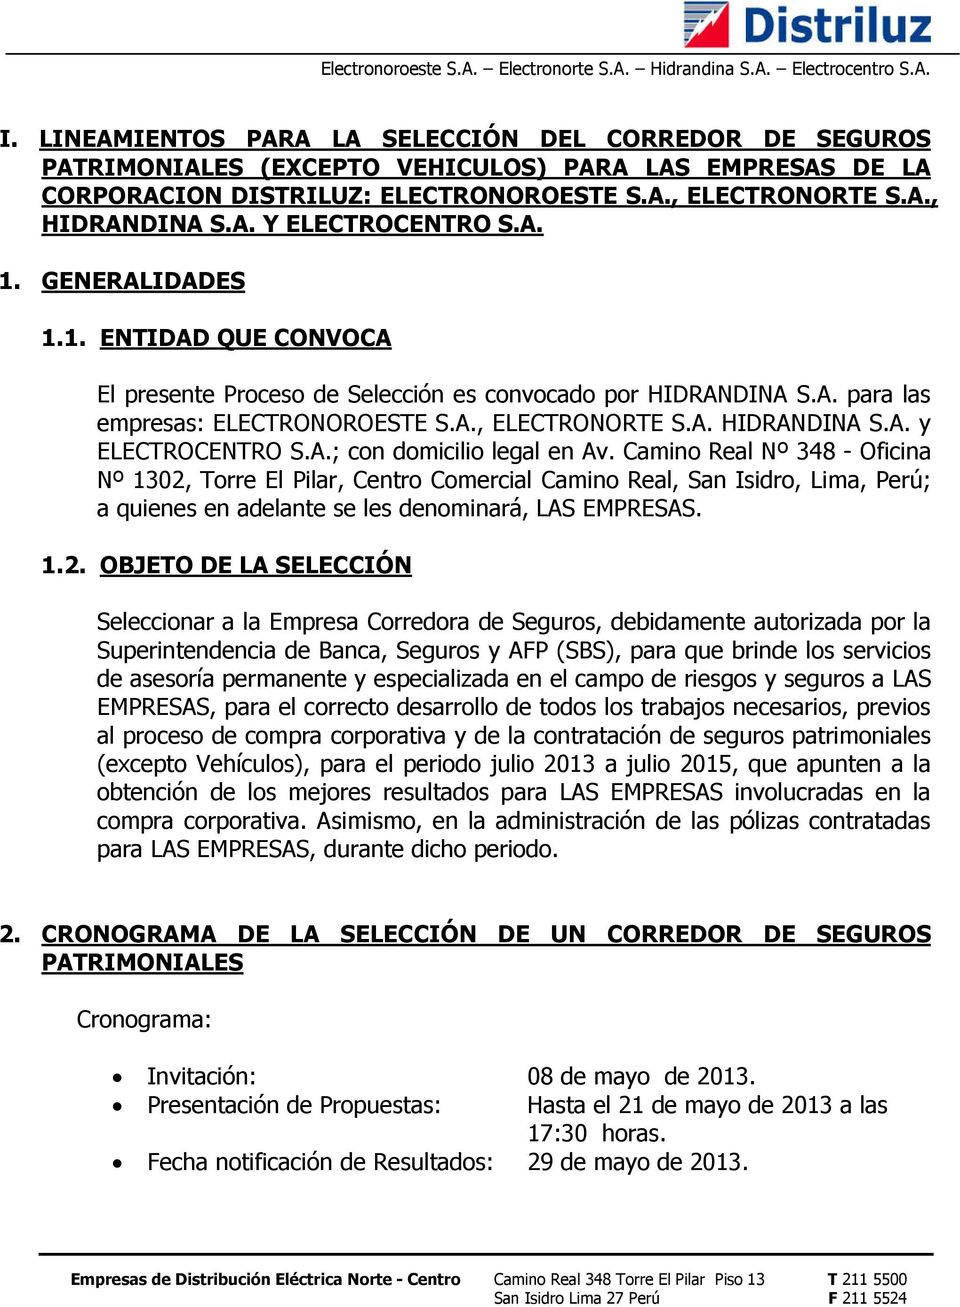 A.; con domicilio legal en Av. Camino Real Nº 348 - Oficina Nº 1302,